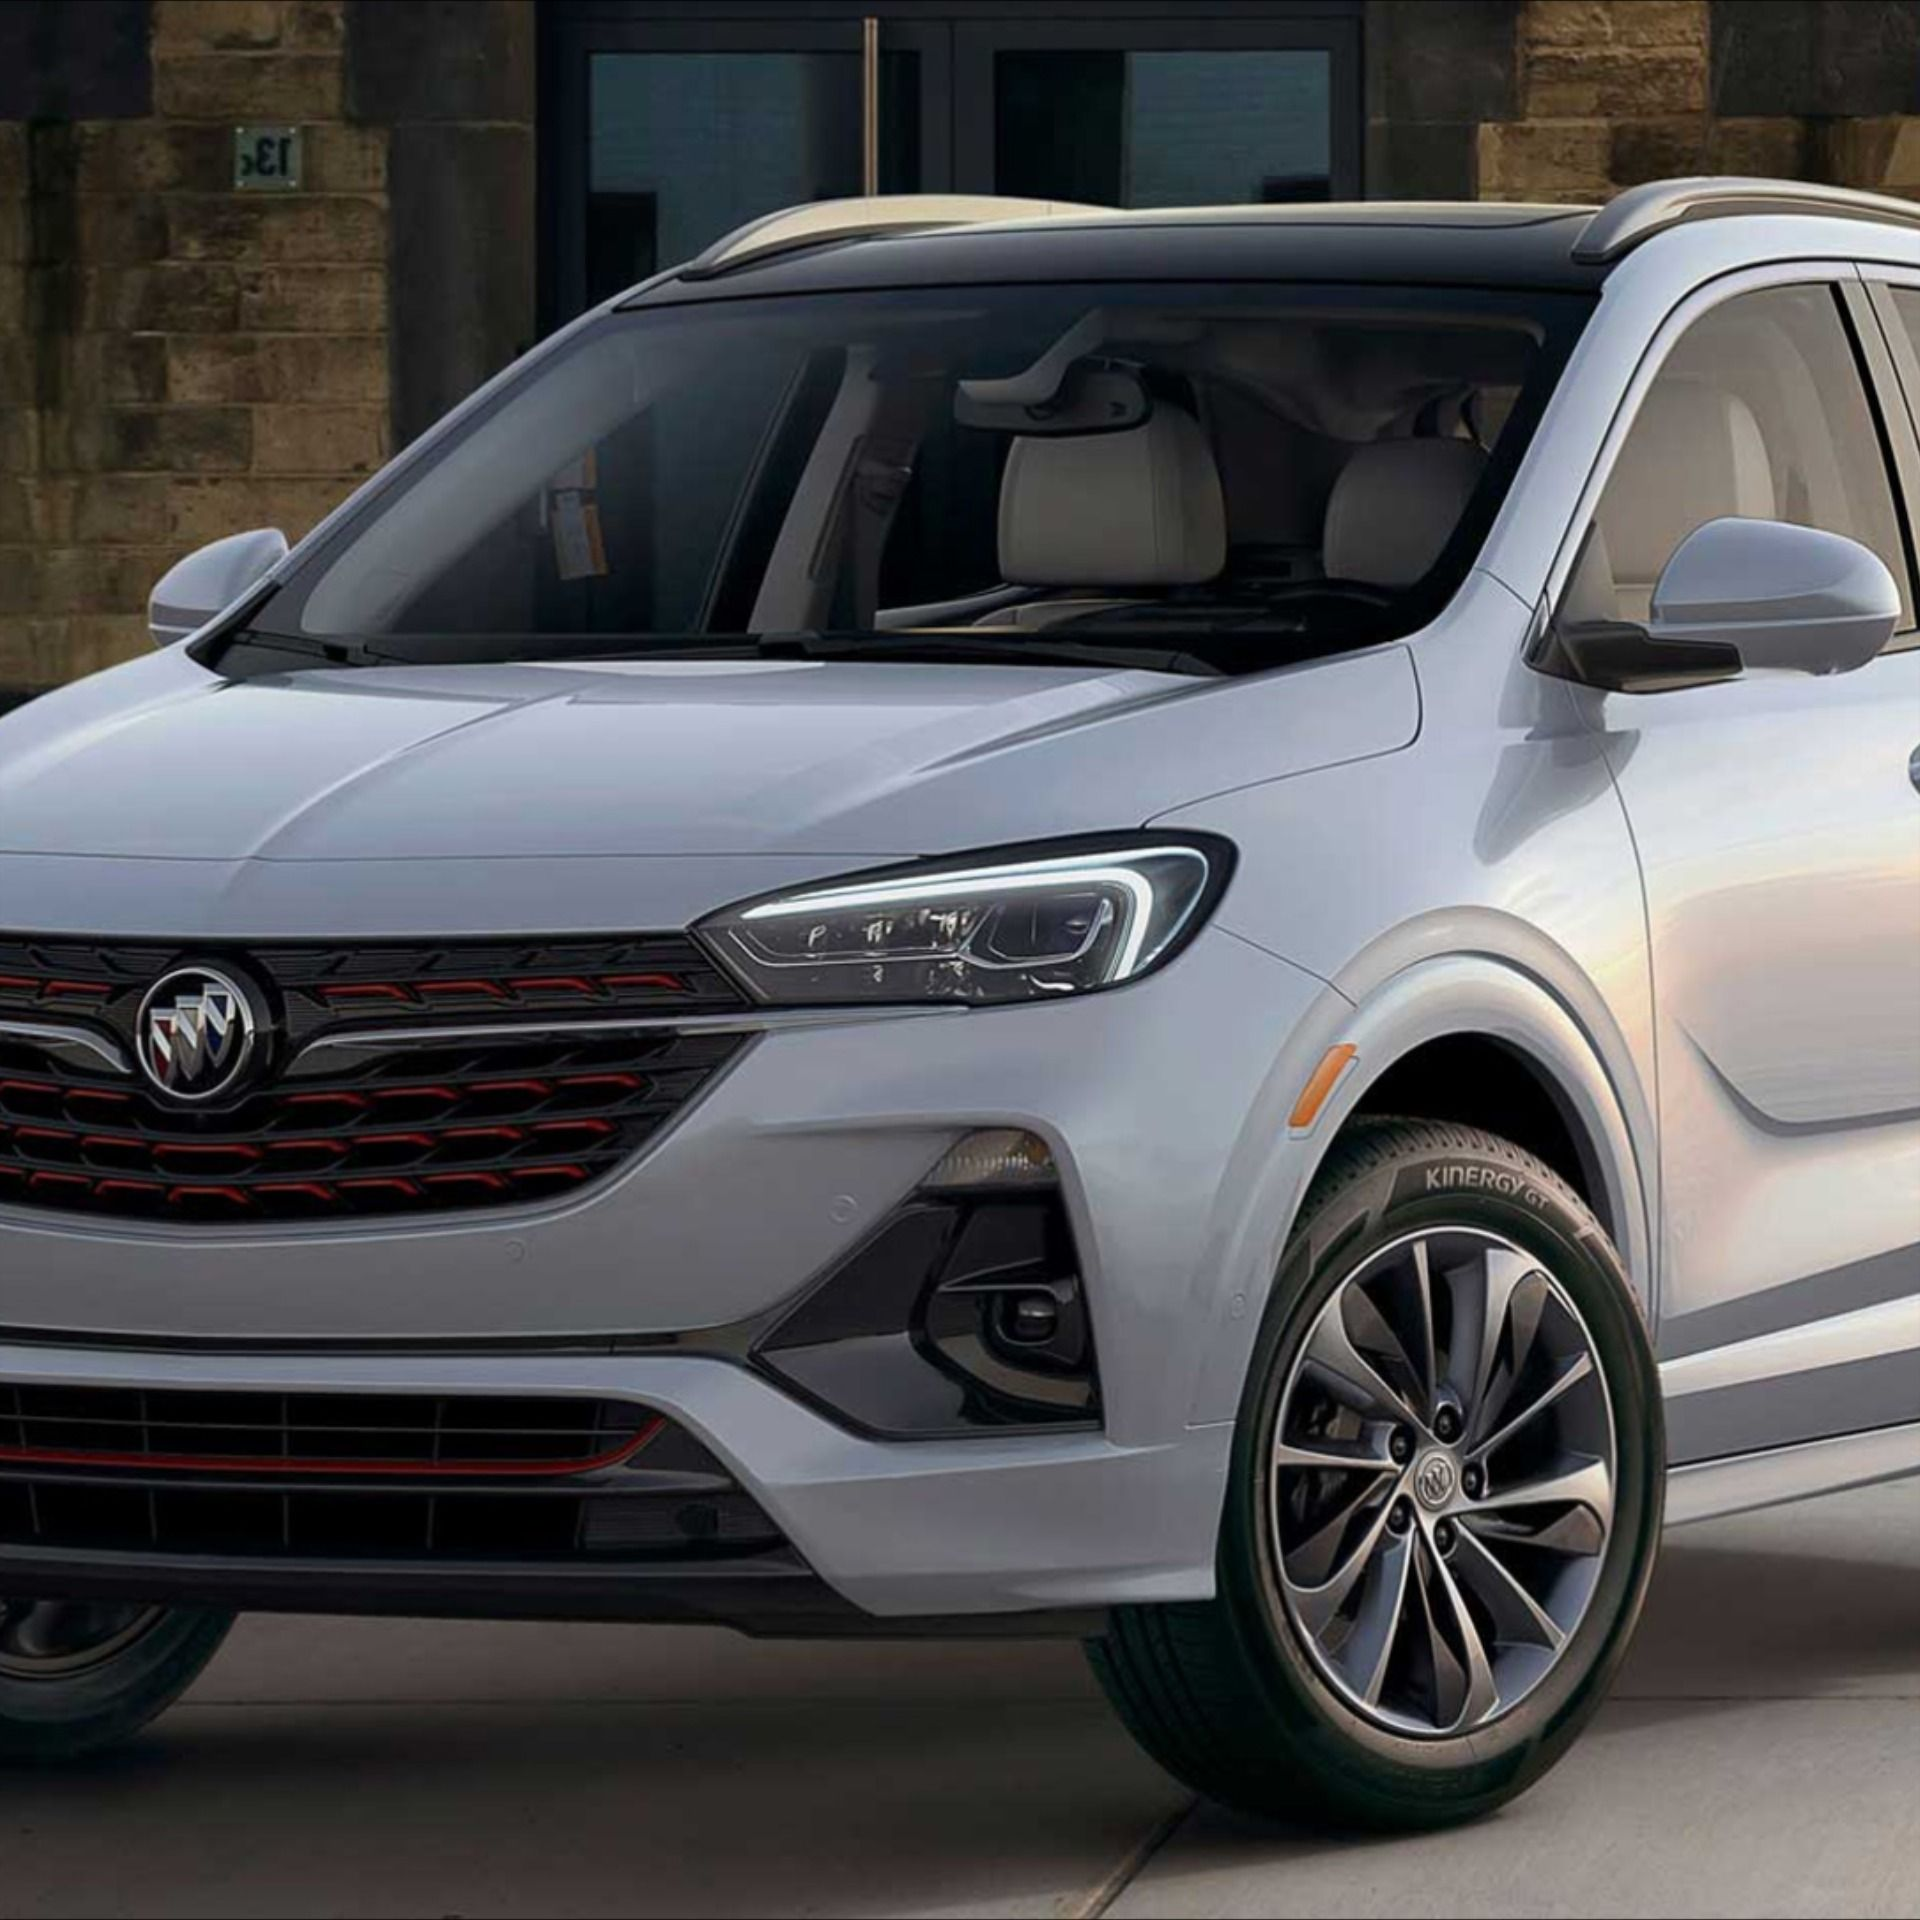 Buick Encore 2019 Elegant 2020 Buick Encore Prices Reviews In 2020 Buick Encore Buick Cargo Storage